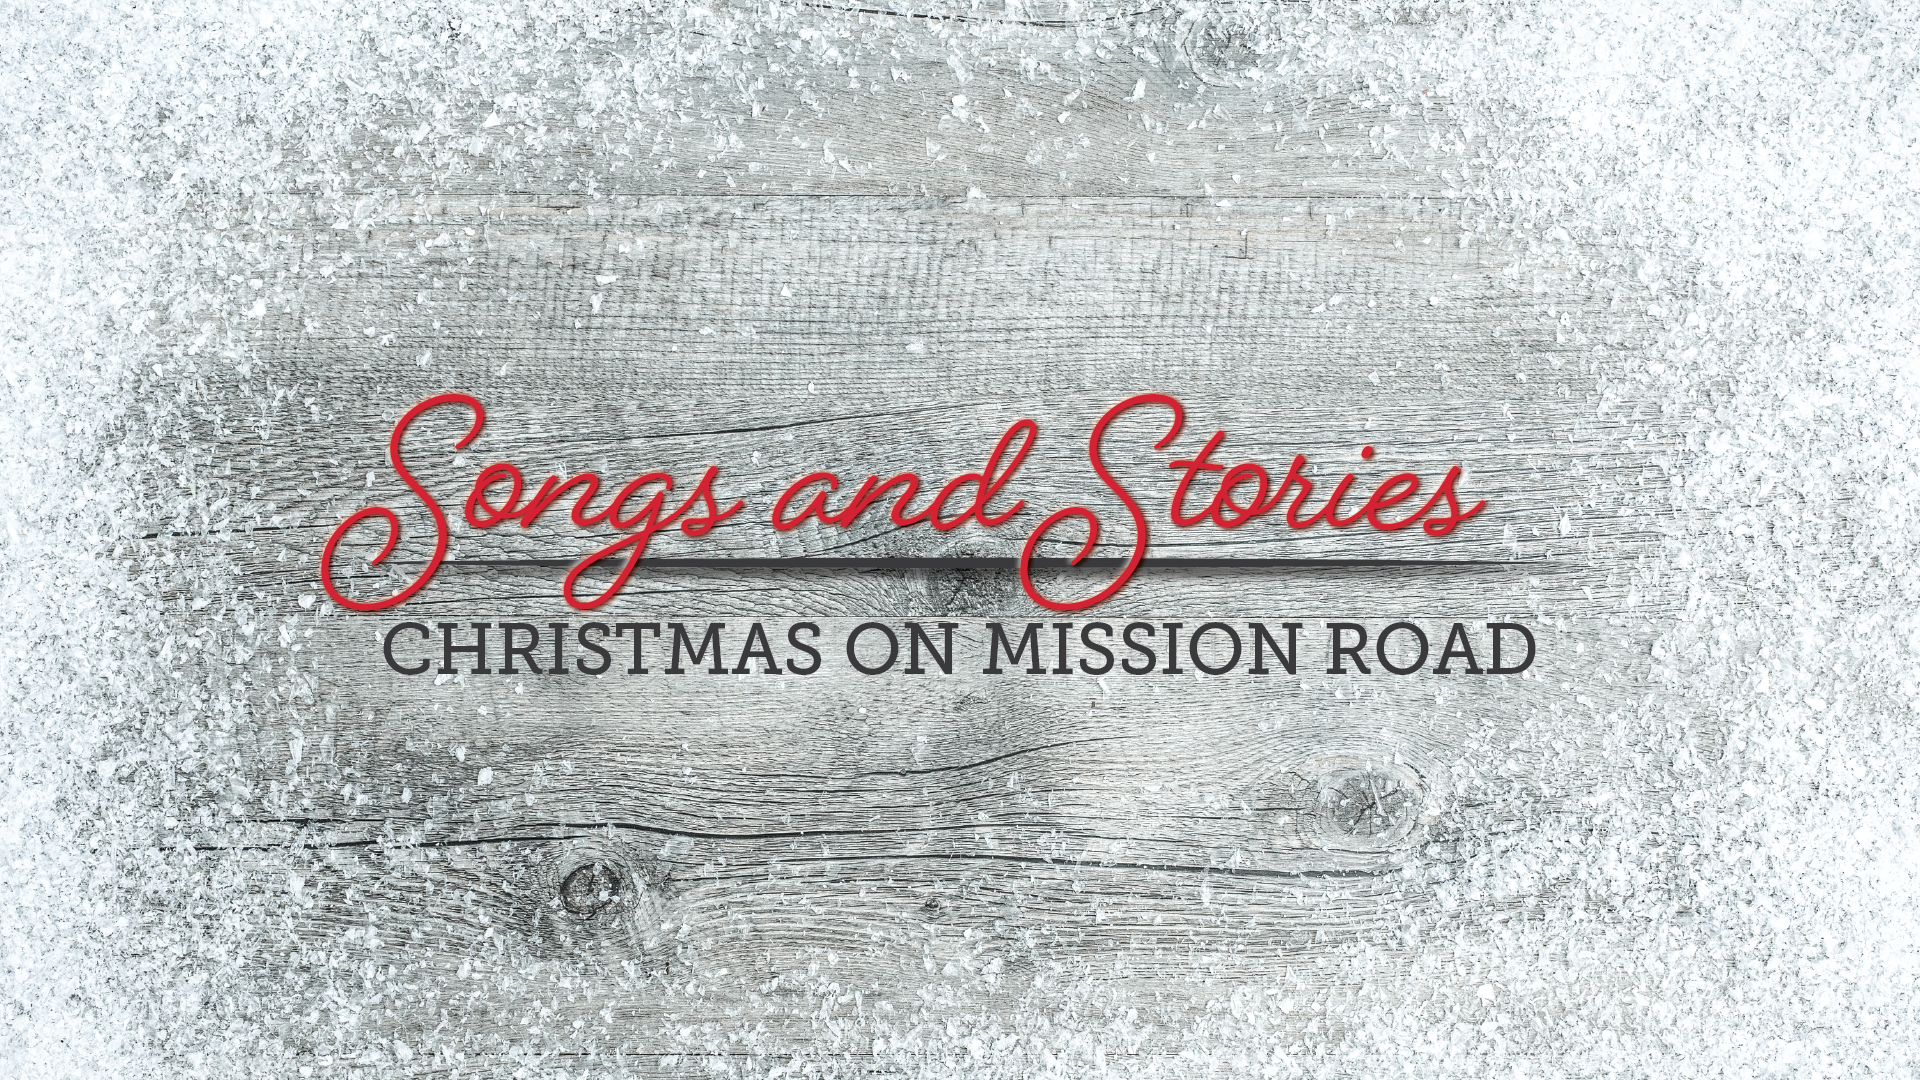 Christmas on Mission Road 2020 image